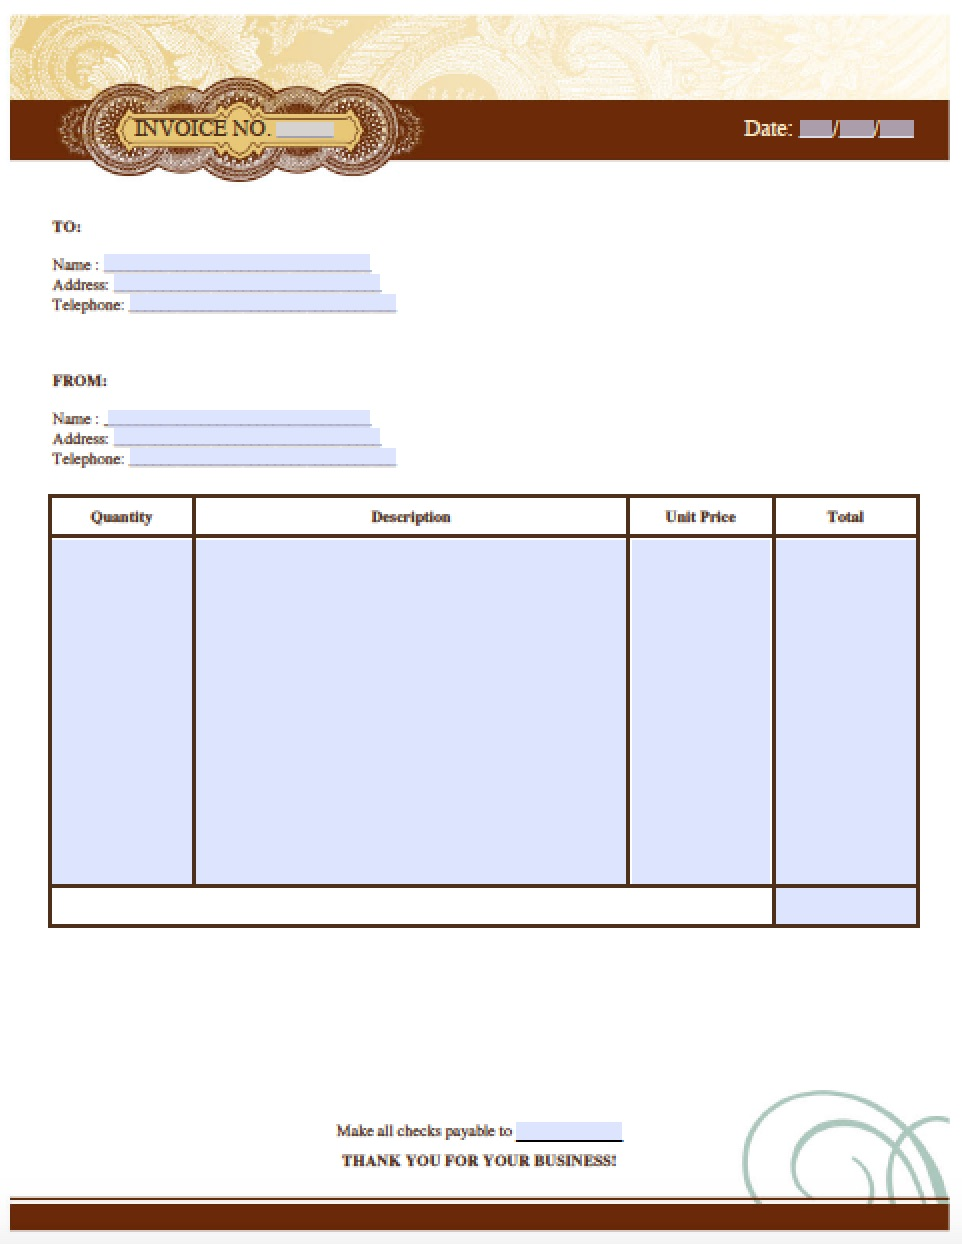 Free Artist Invoice Template Excel PDF Word Doc - Free invoice images for service business